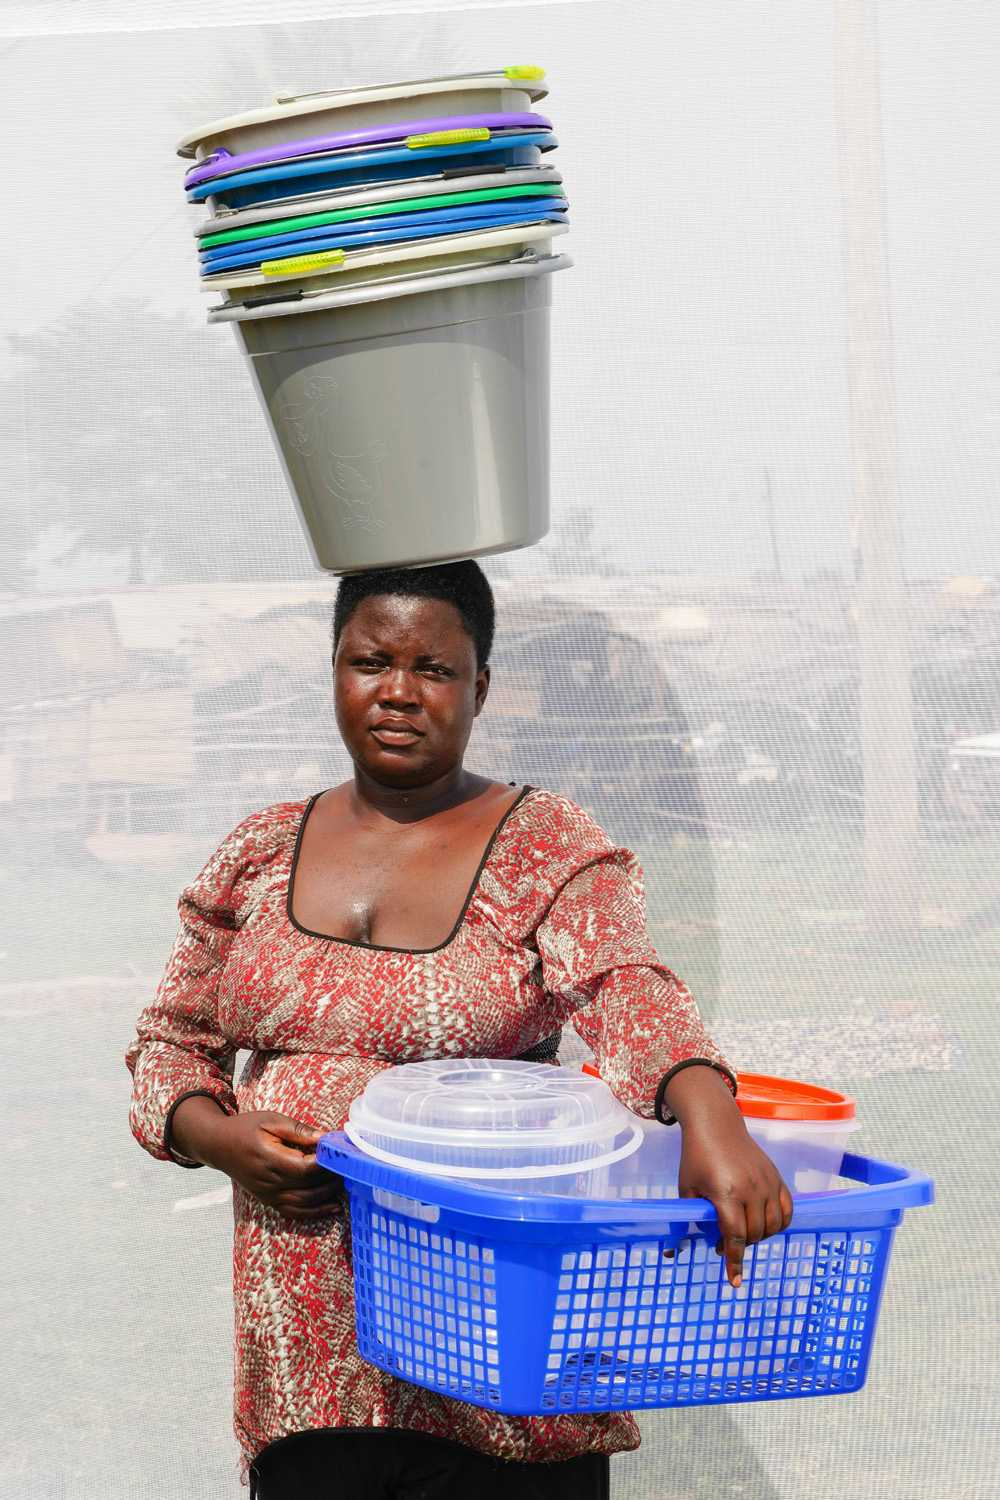 Selling plastic buckets